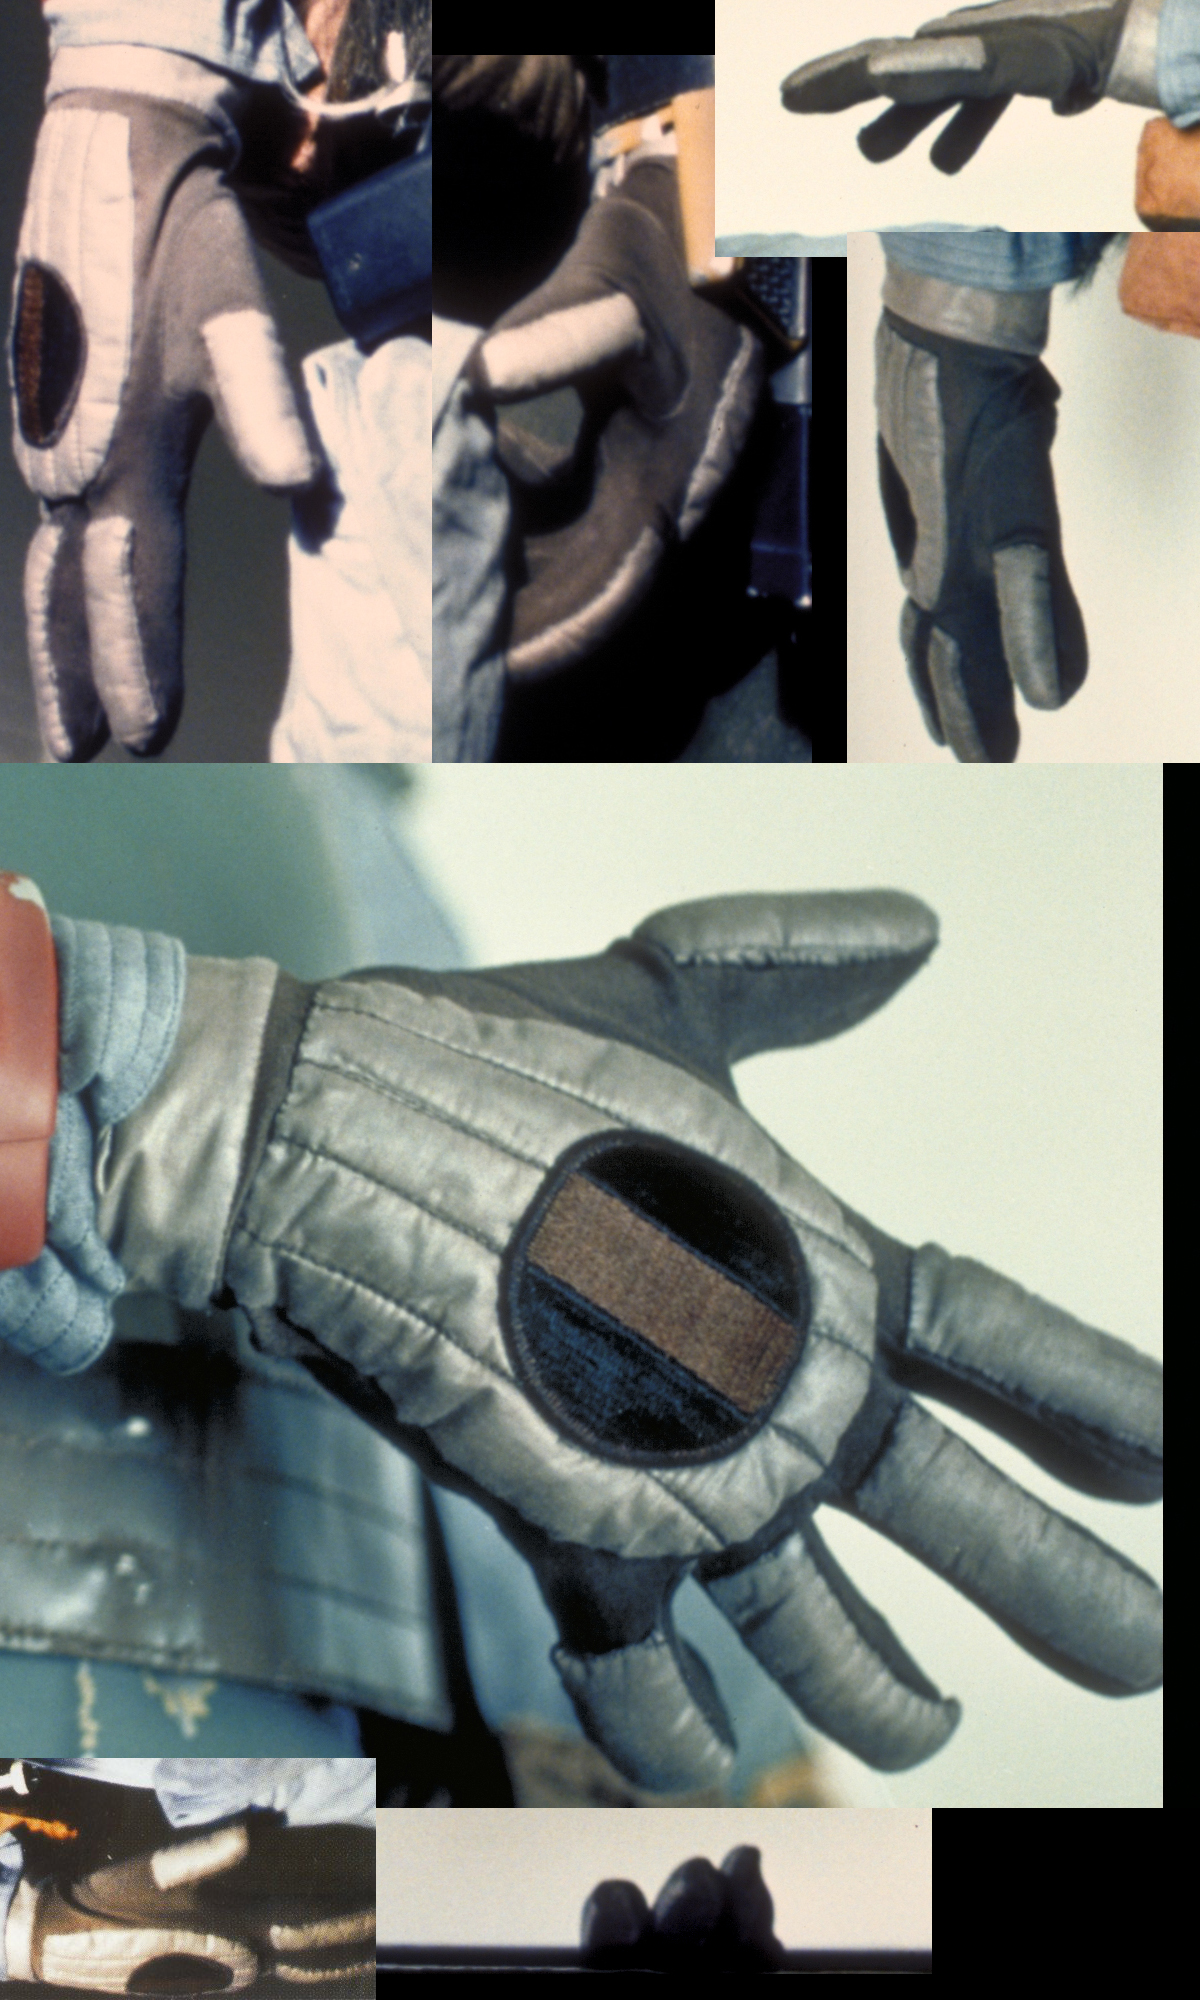 pp1 gloves collage.jpg